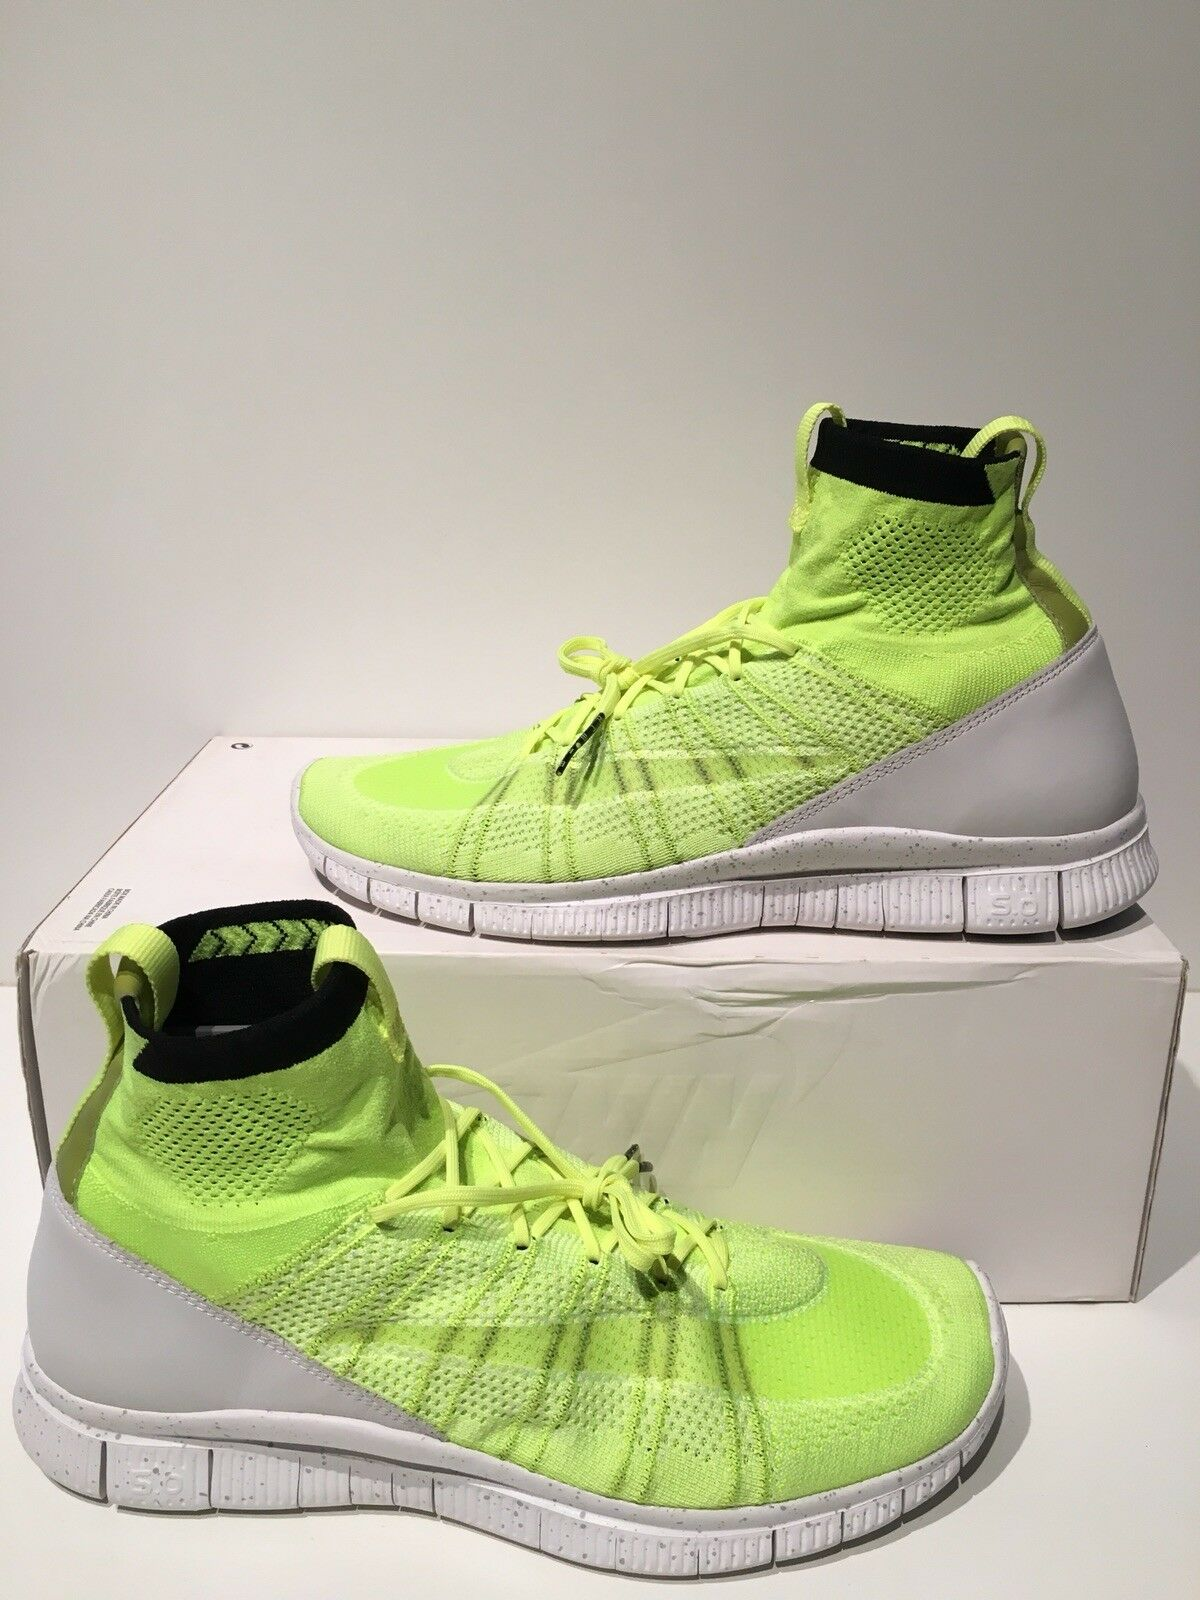 New Nike HTM Free Mercurial Superfly Flyknit Volt White Black size 13 689466 711